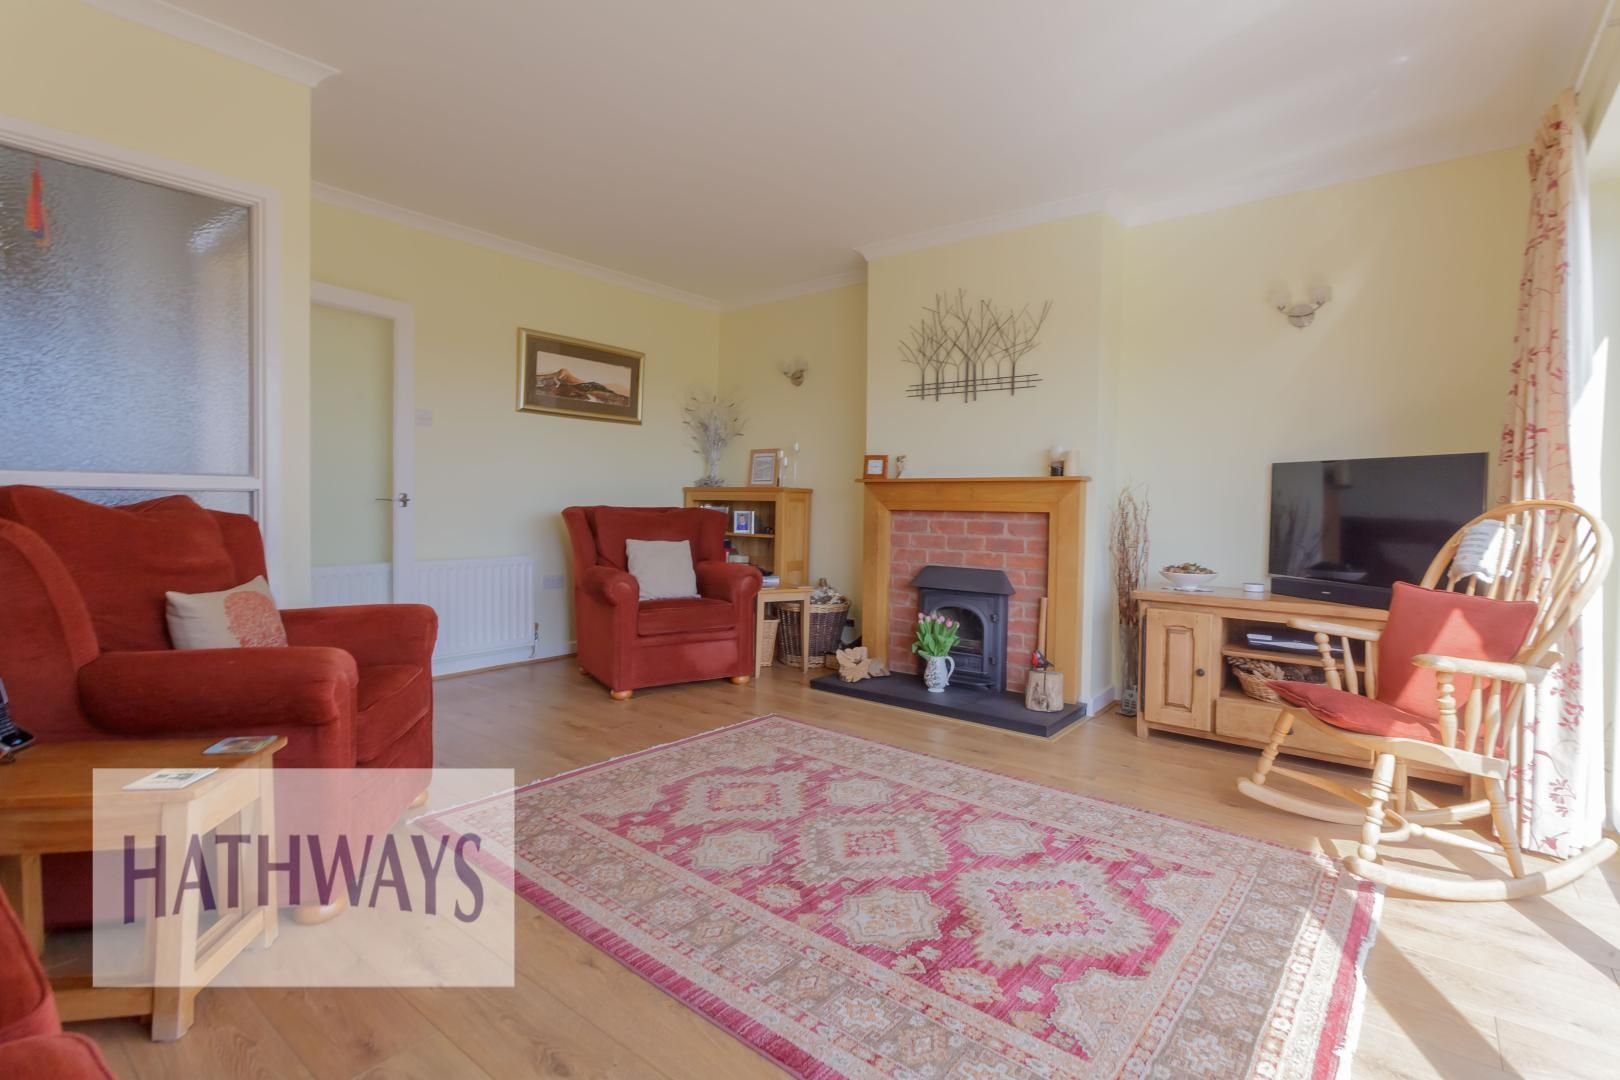 4 bed house for sale in Greenfield  - Property Image 21